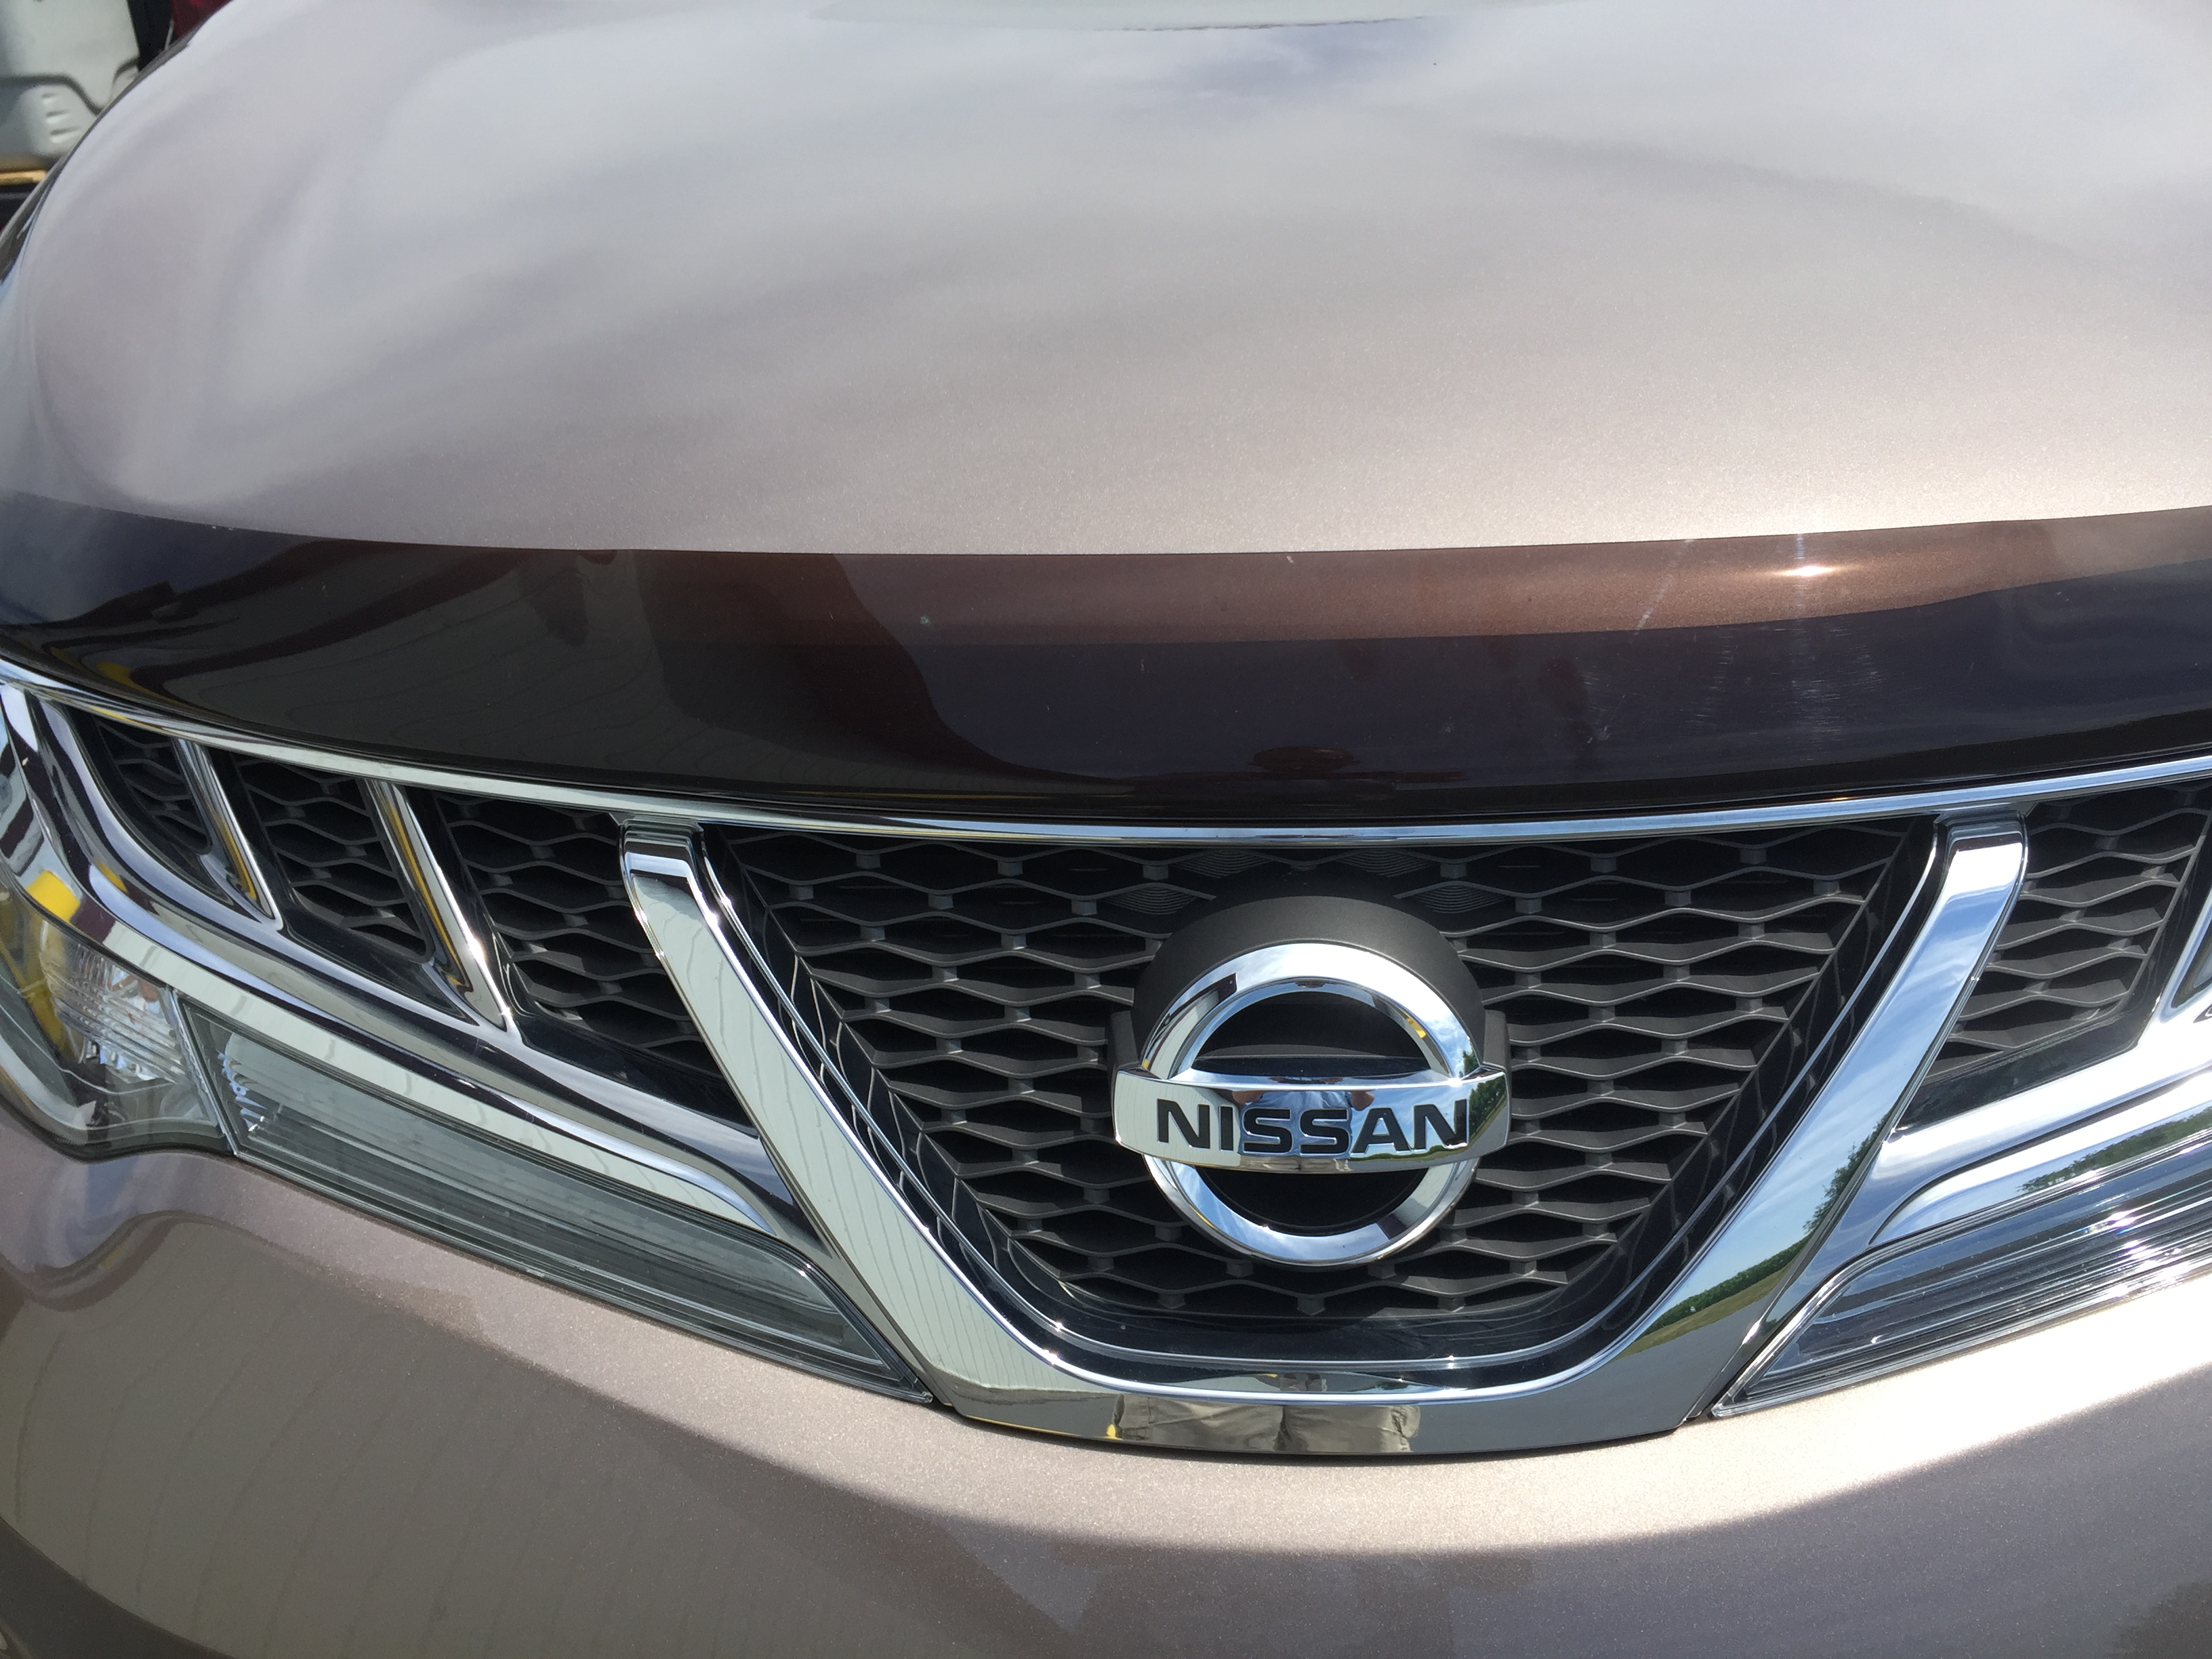 2012 Nissan Murano Rear Quarter Dent Repair, Paintless Dent Removal, http://217dent.com